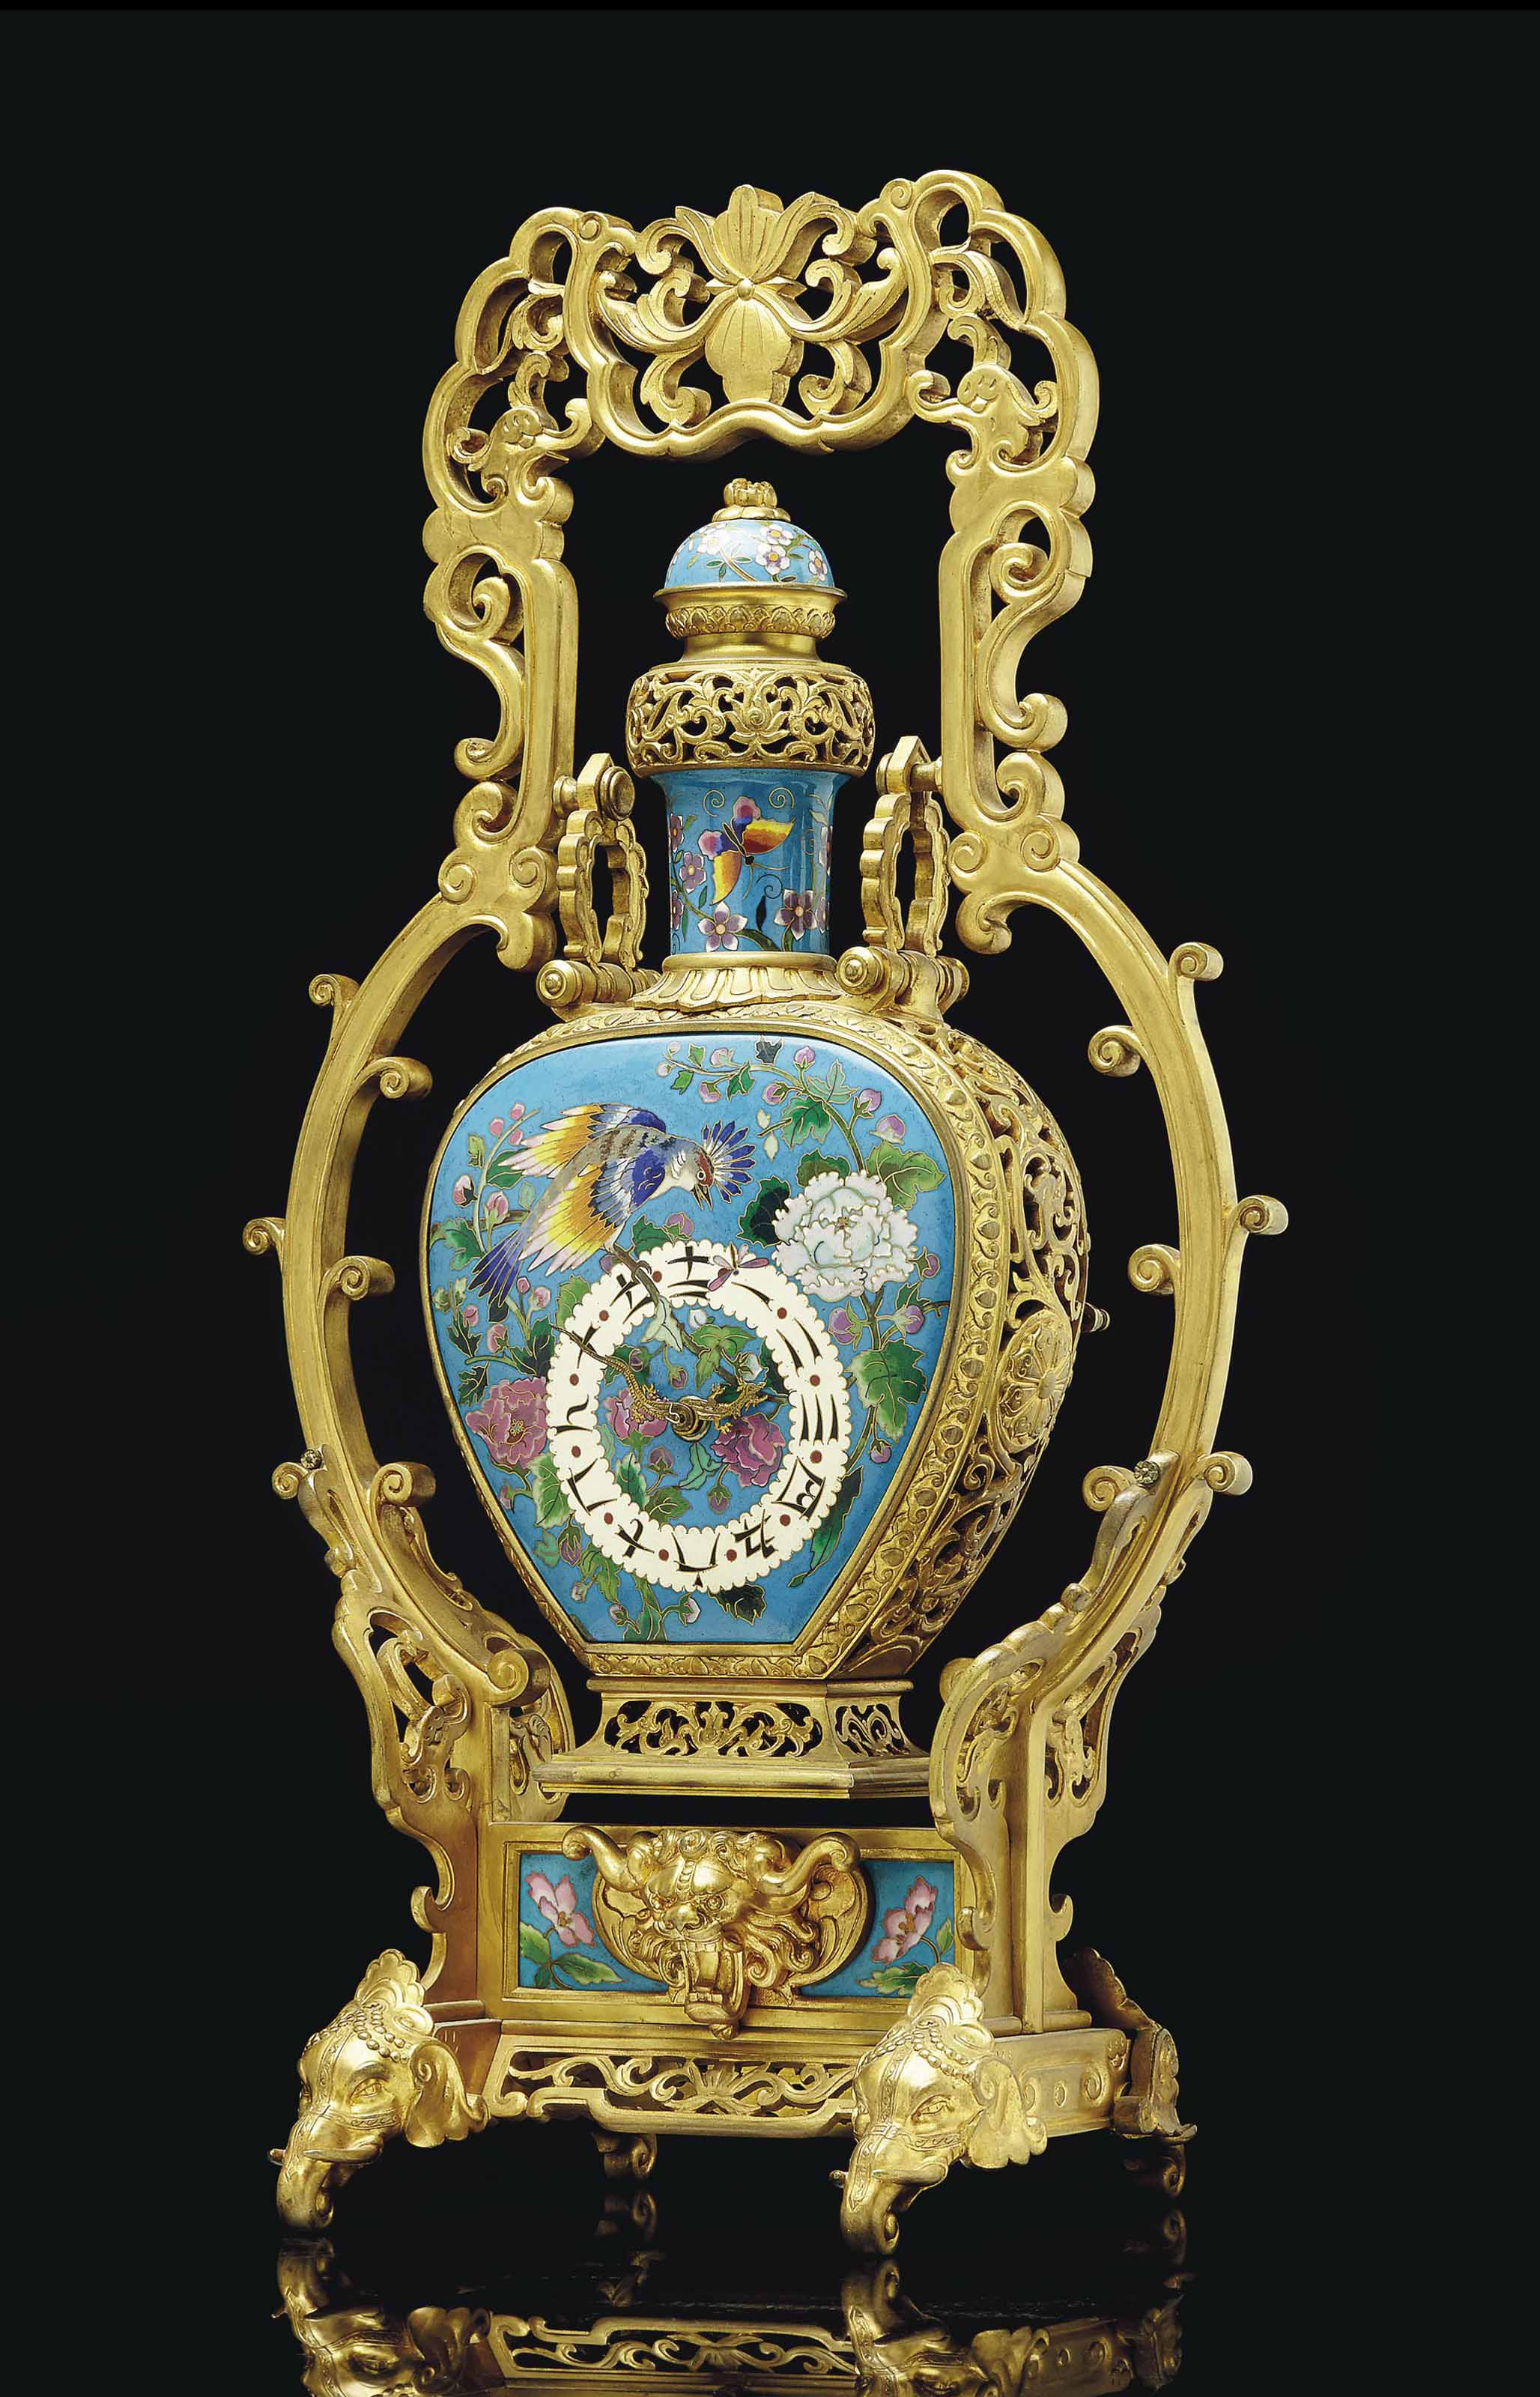 A French Japonisme Ormolu And Cloisonne Enamel Mantel